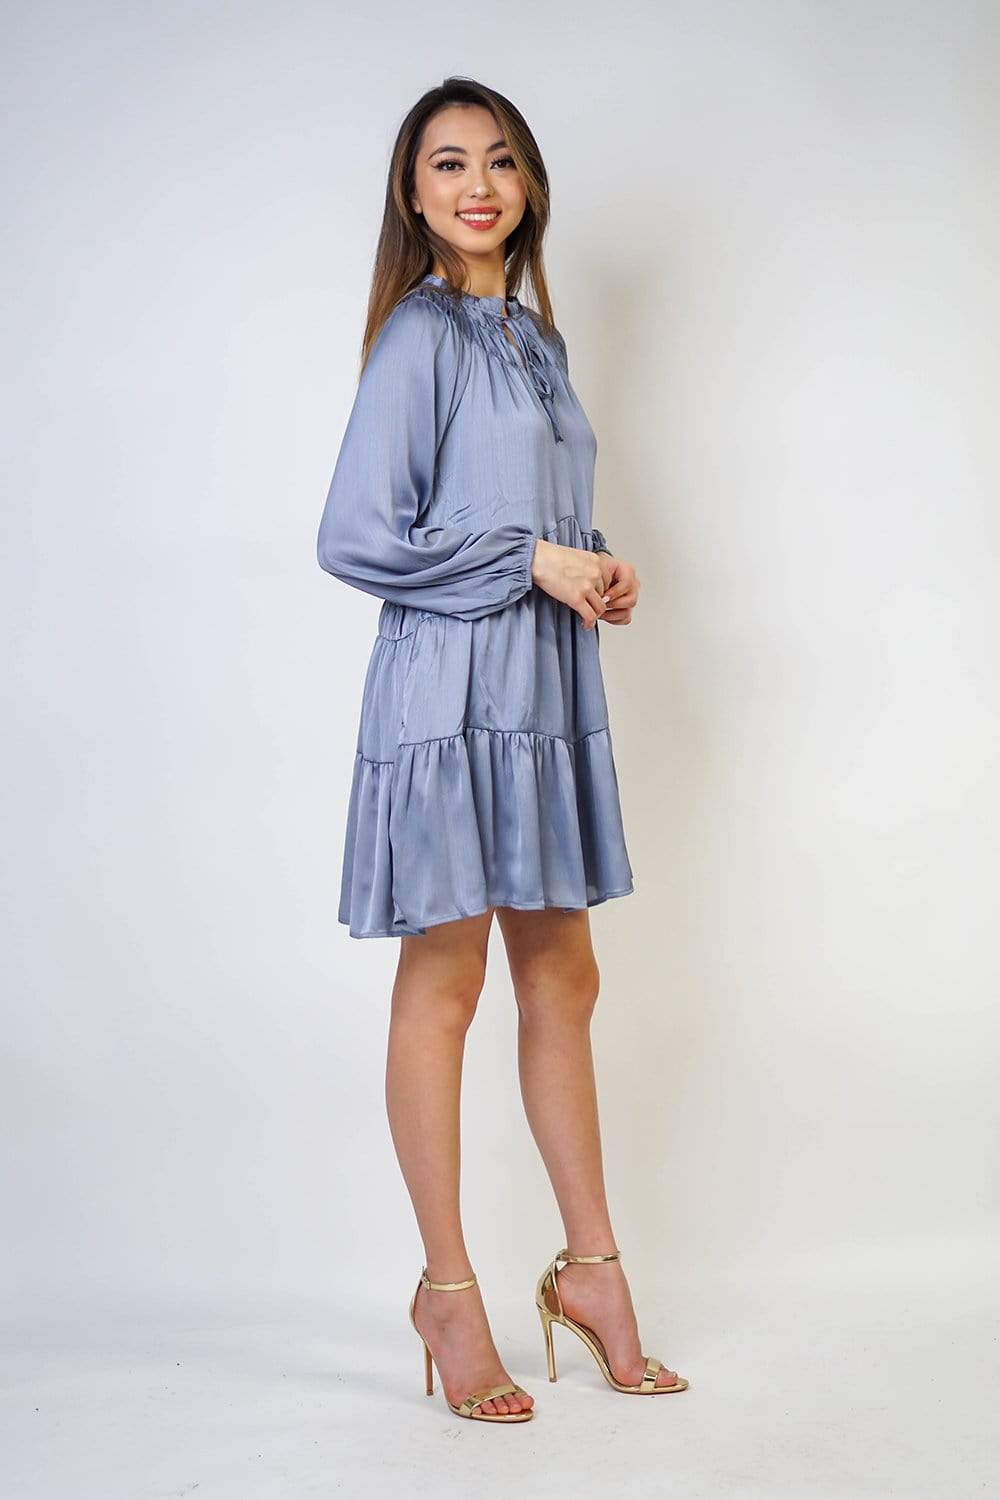 DRESS Key Hole Tie Front Smocking Shift Dress With Pockets - Chloe Dao